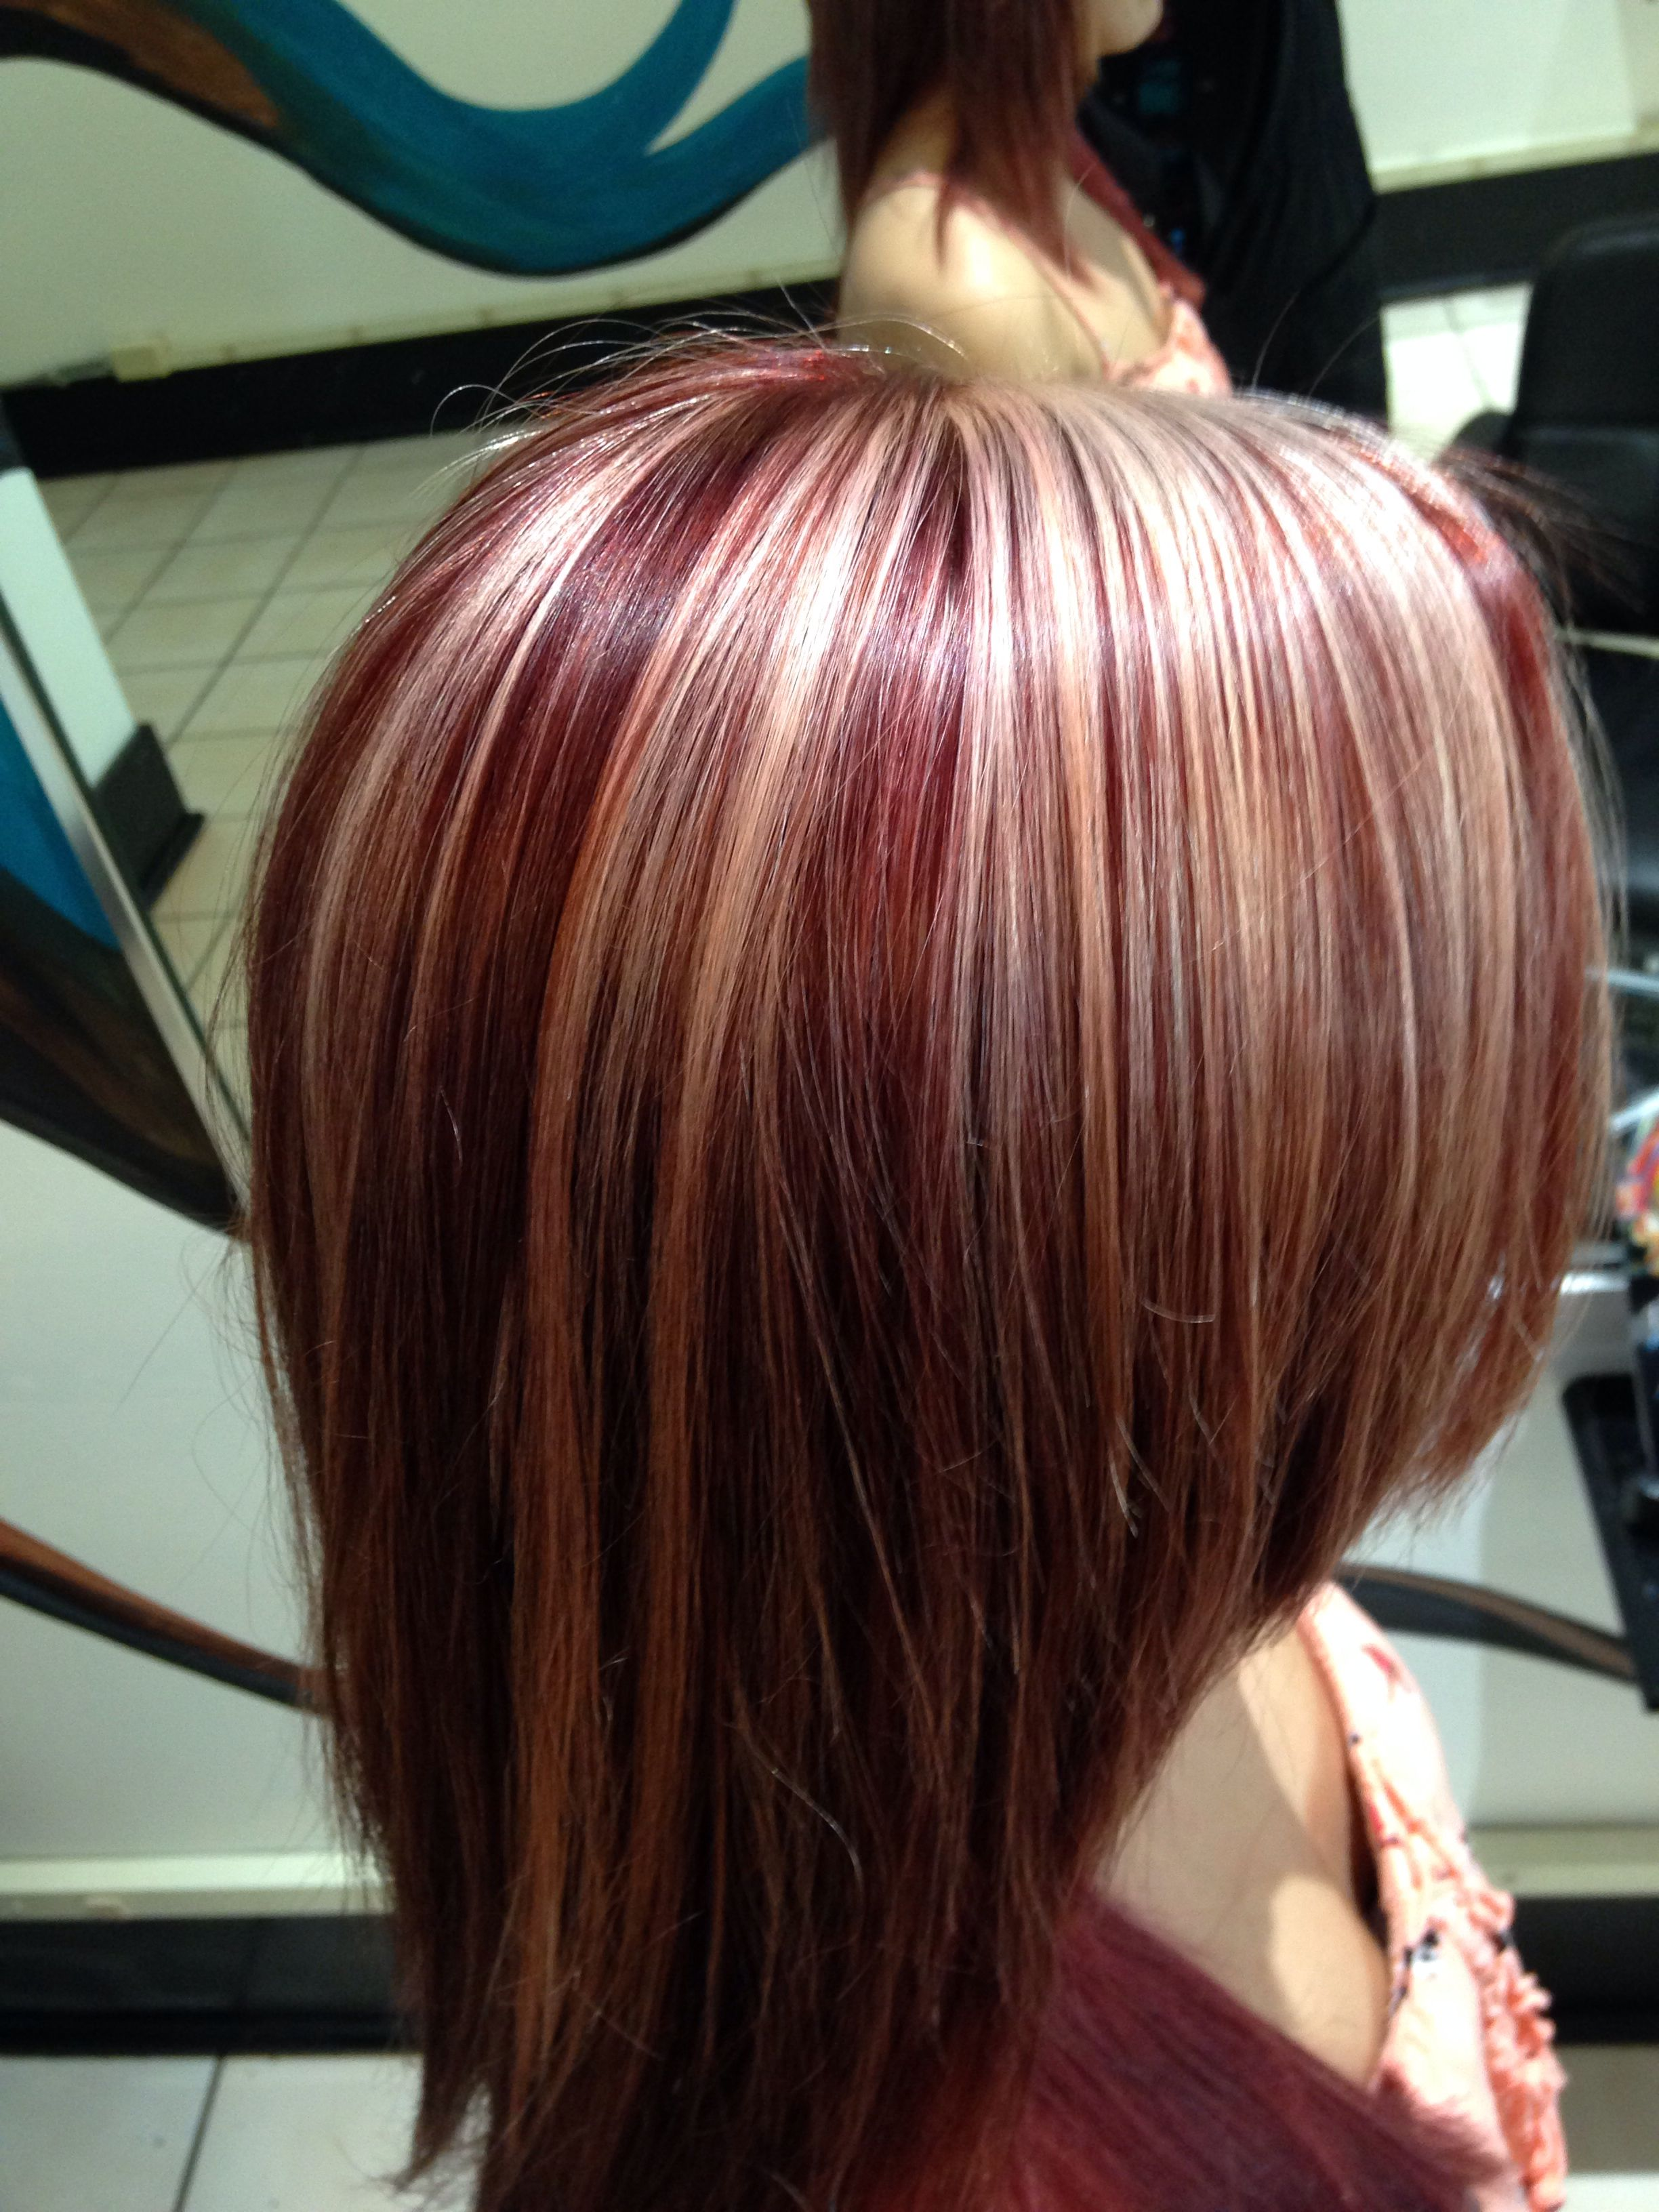 Pin By Jennifer Horne On Hair Done By Me Hair Styles Pinwheel Hair Color Red Blonde Hair